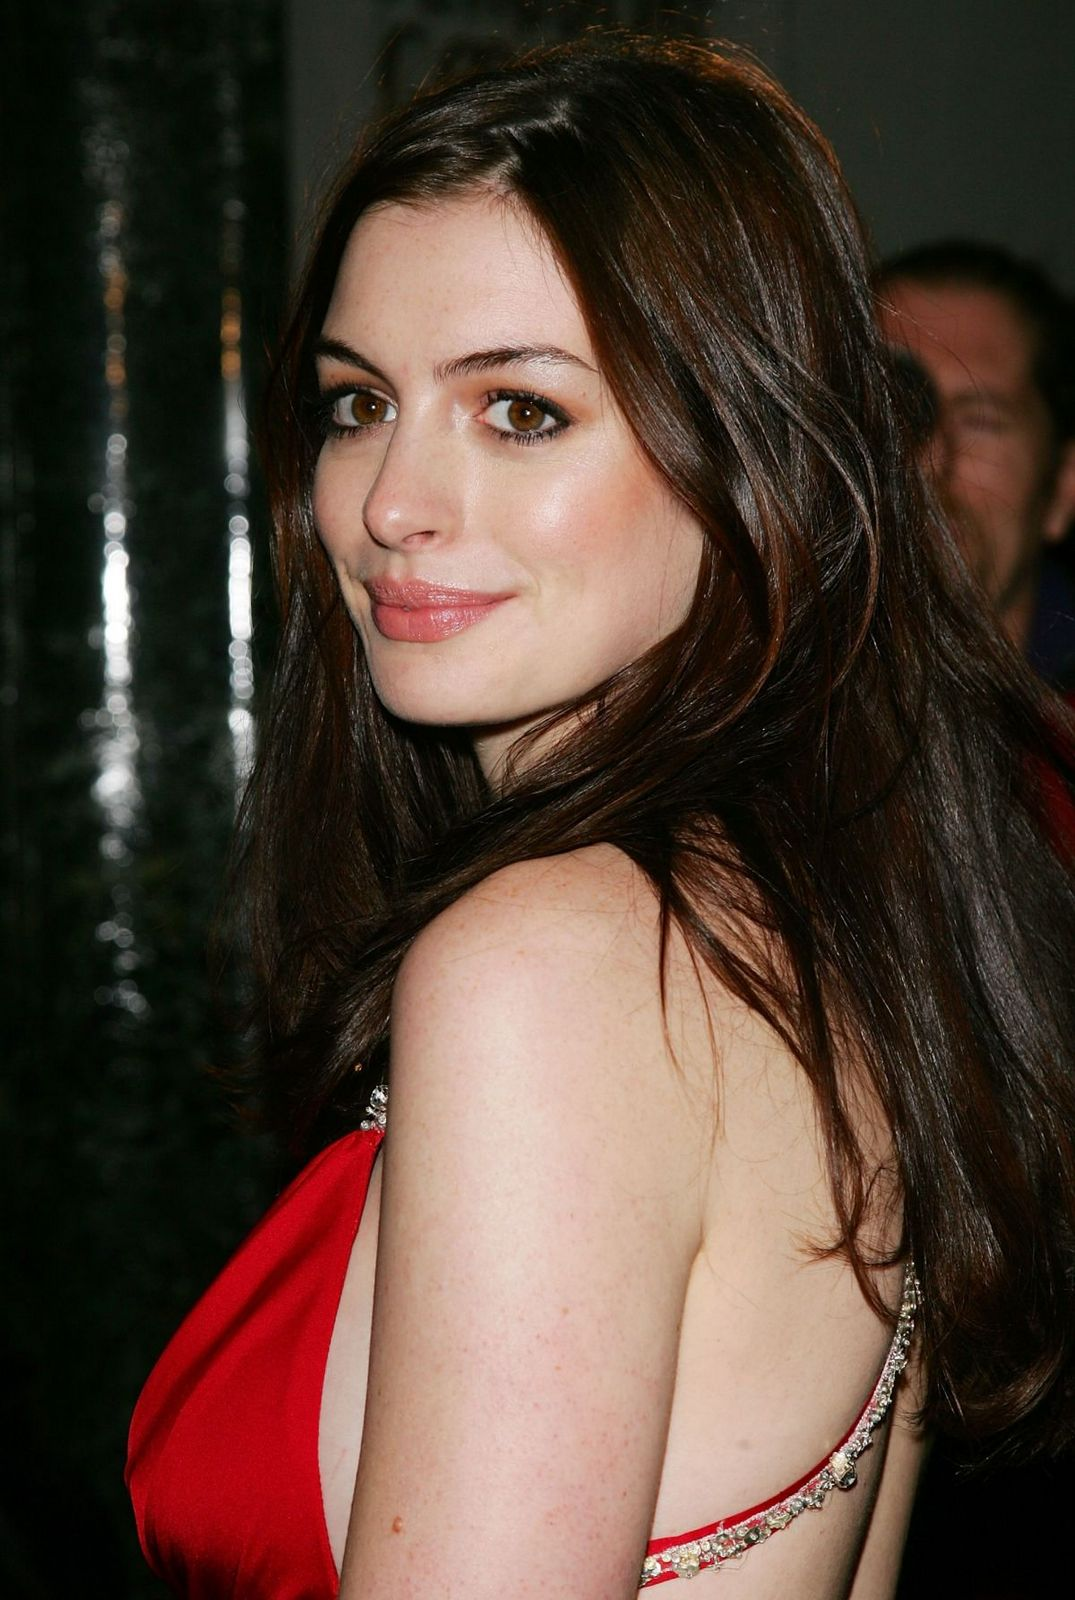 Celebrity Anne Hathaway nudes (22 foto and video), Tits, Sideboobs, Boobs, lingerie 2006